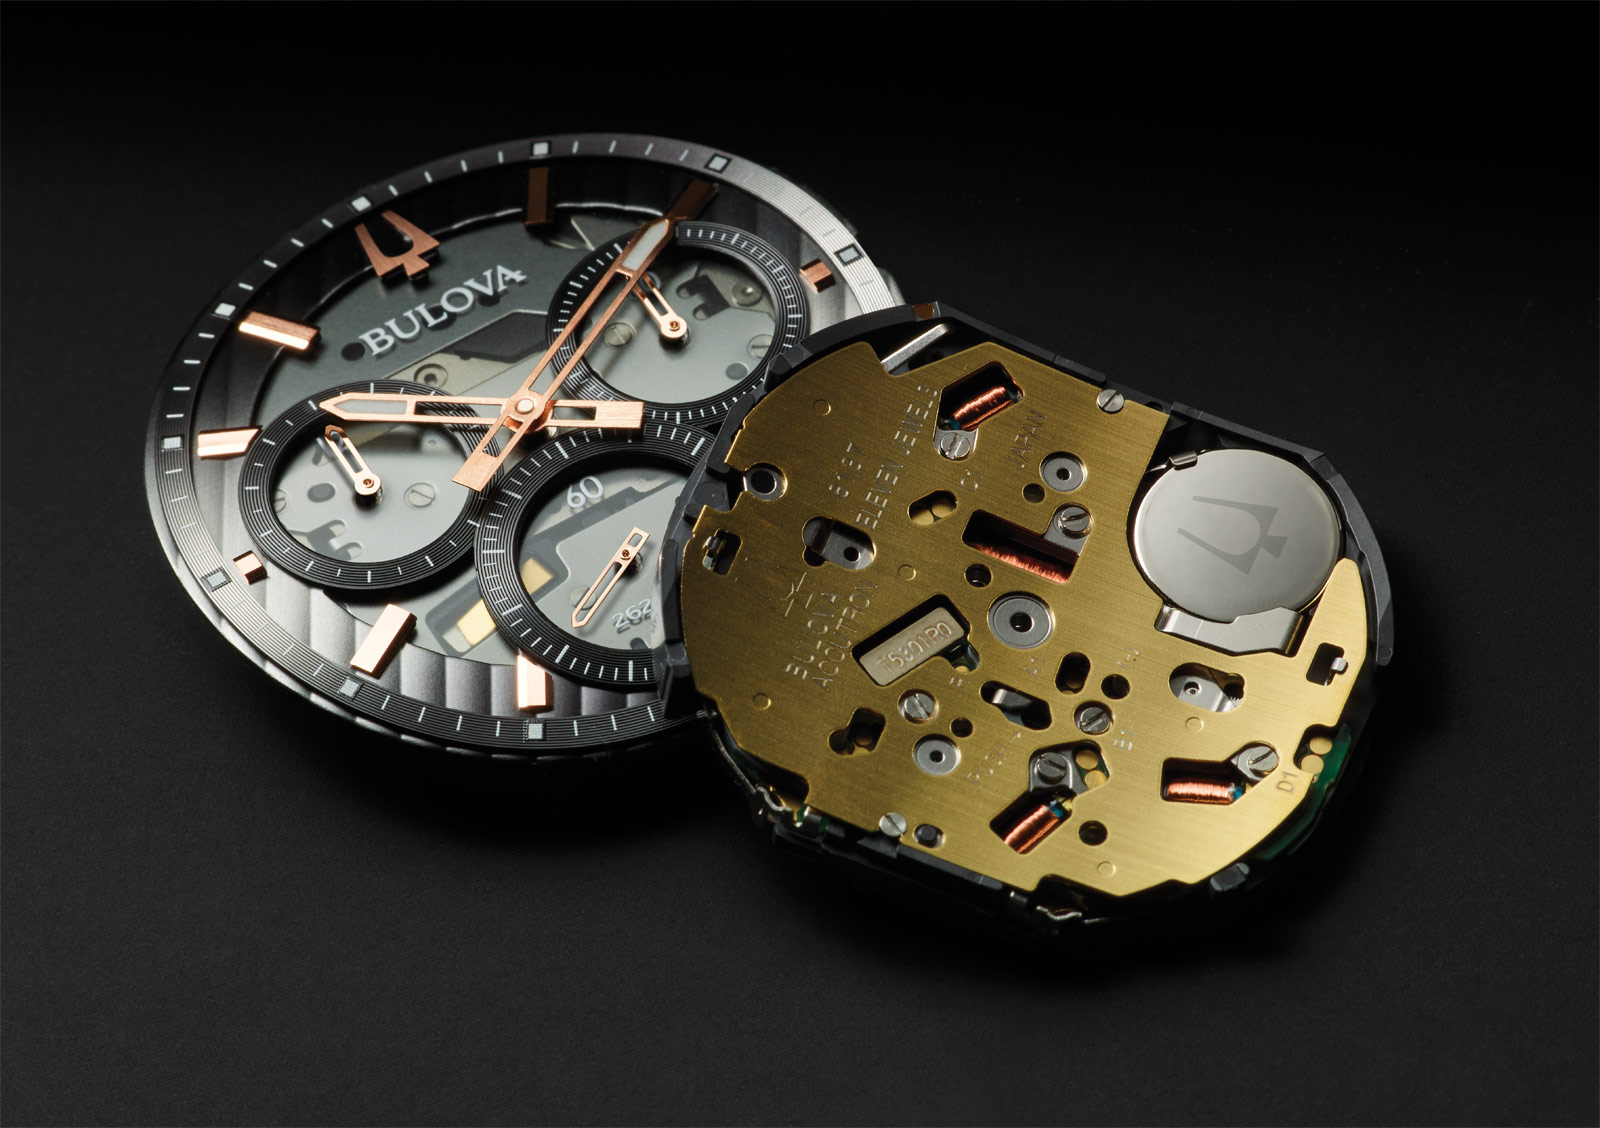 The innovative movement inside the Bulova CURV